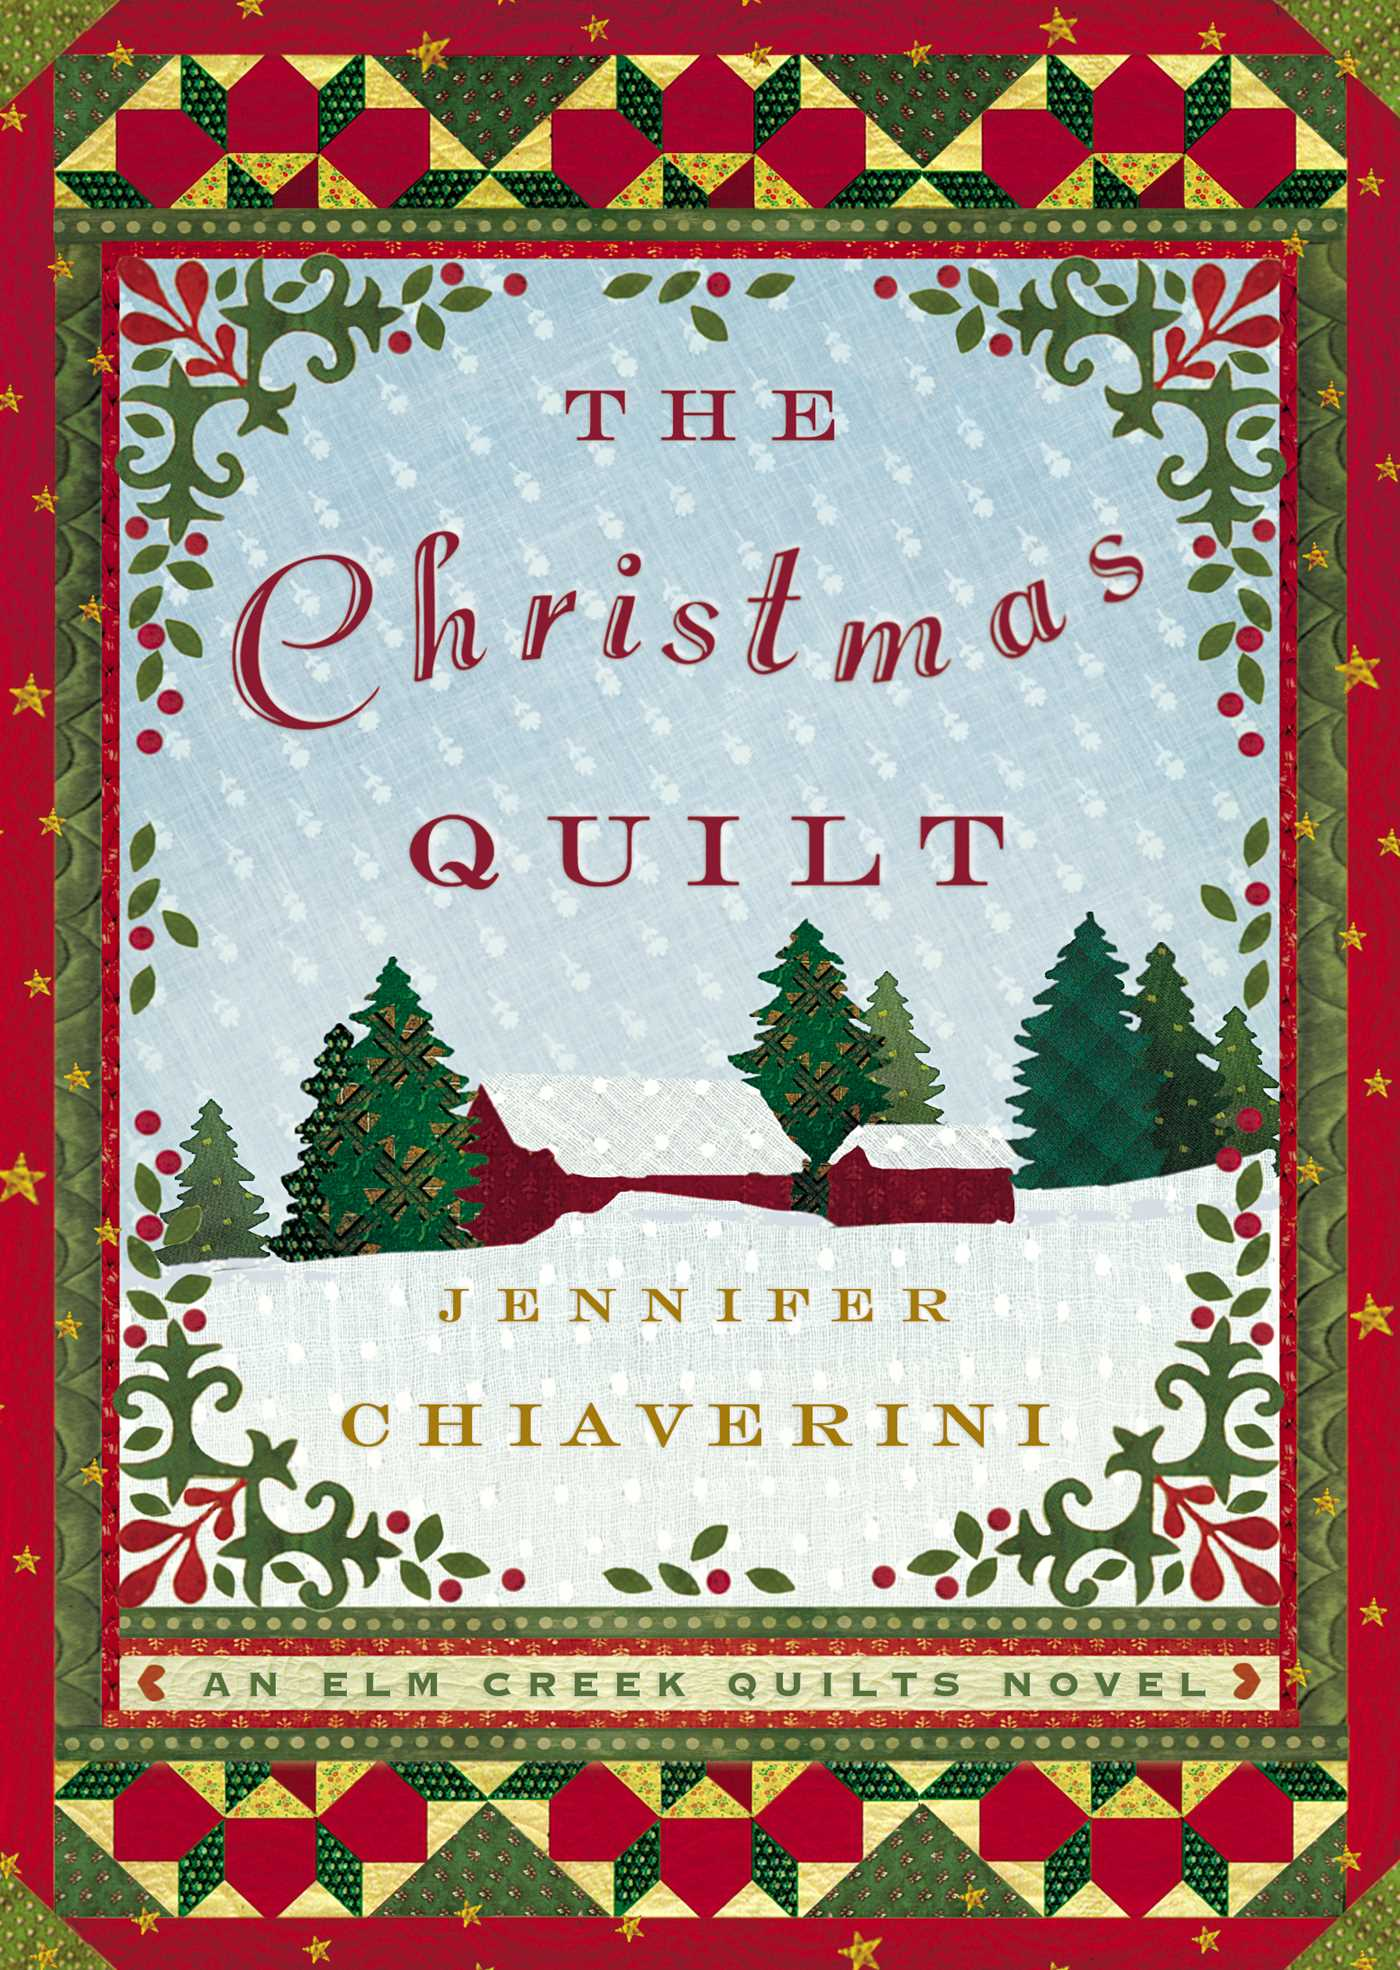 Christmas-quilt-9781416591726_hr